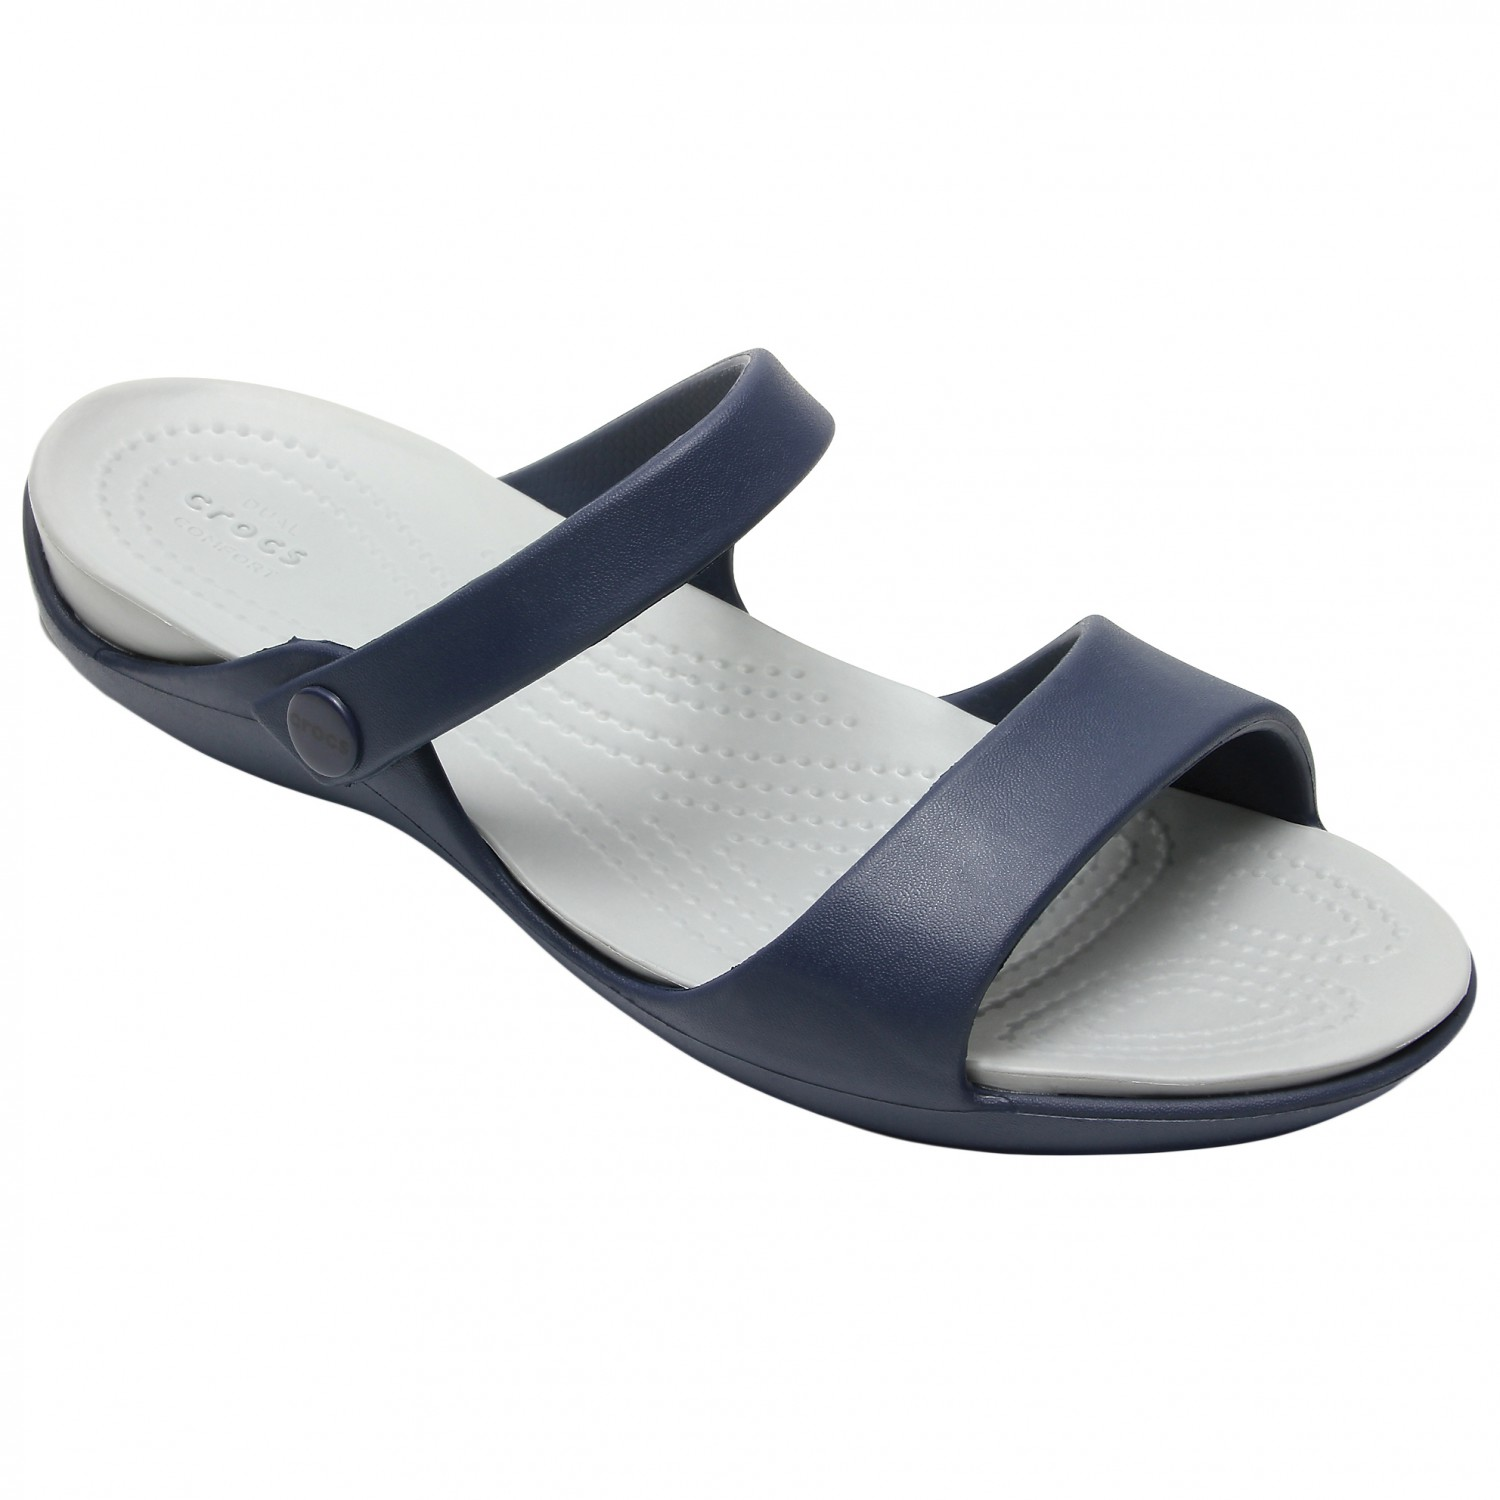 4774128b4656b Crocs - Women s Cleo V - Outdoor sandals